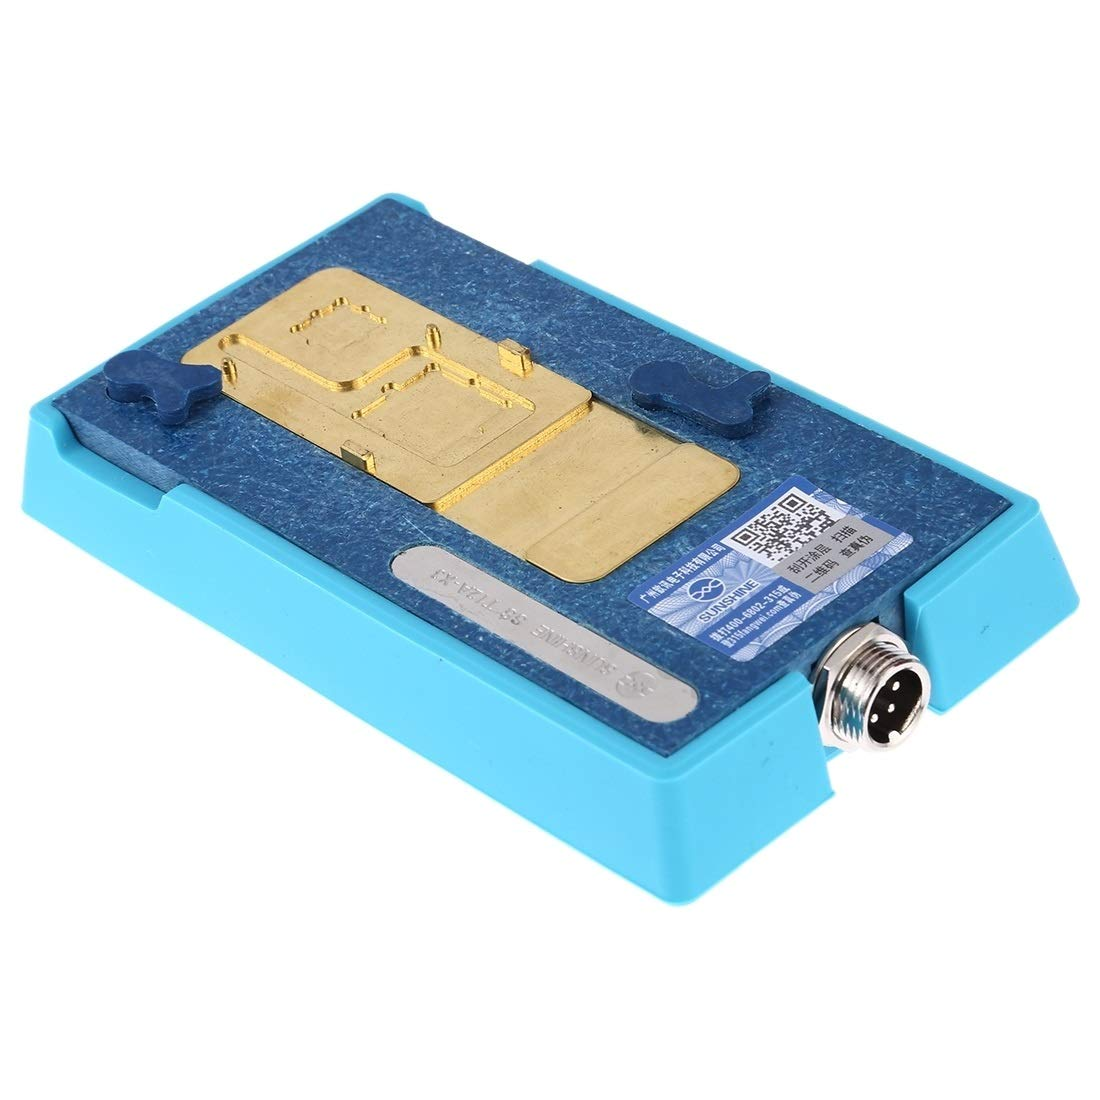 Hyx Repair Tool SS-T12A-X3 CPU Motherboard Heating Table Repair Disassembly Platform